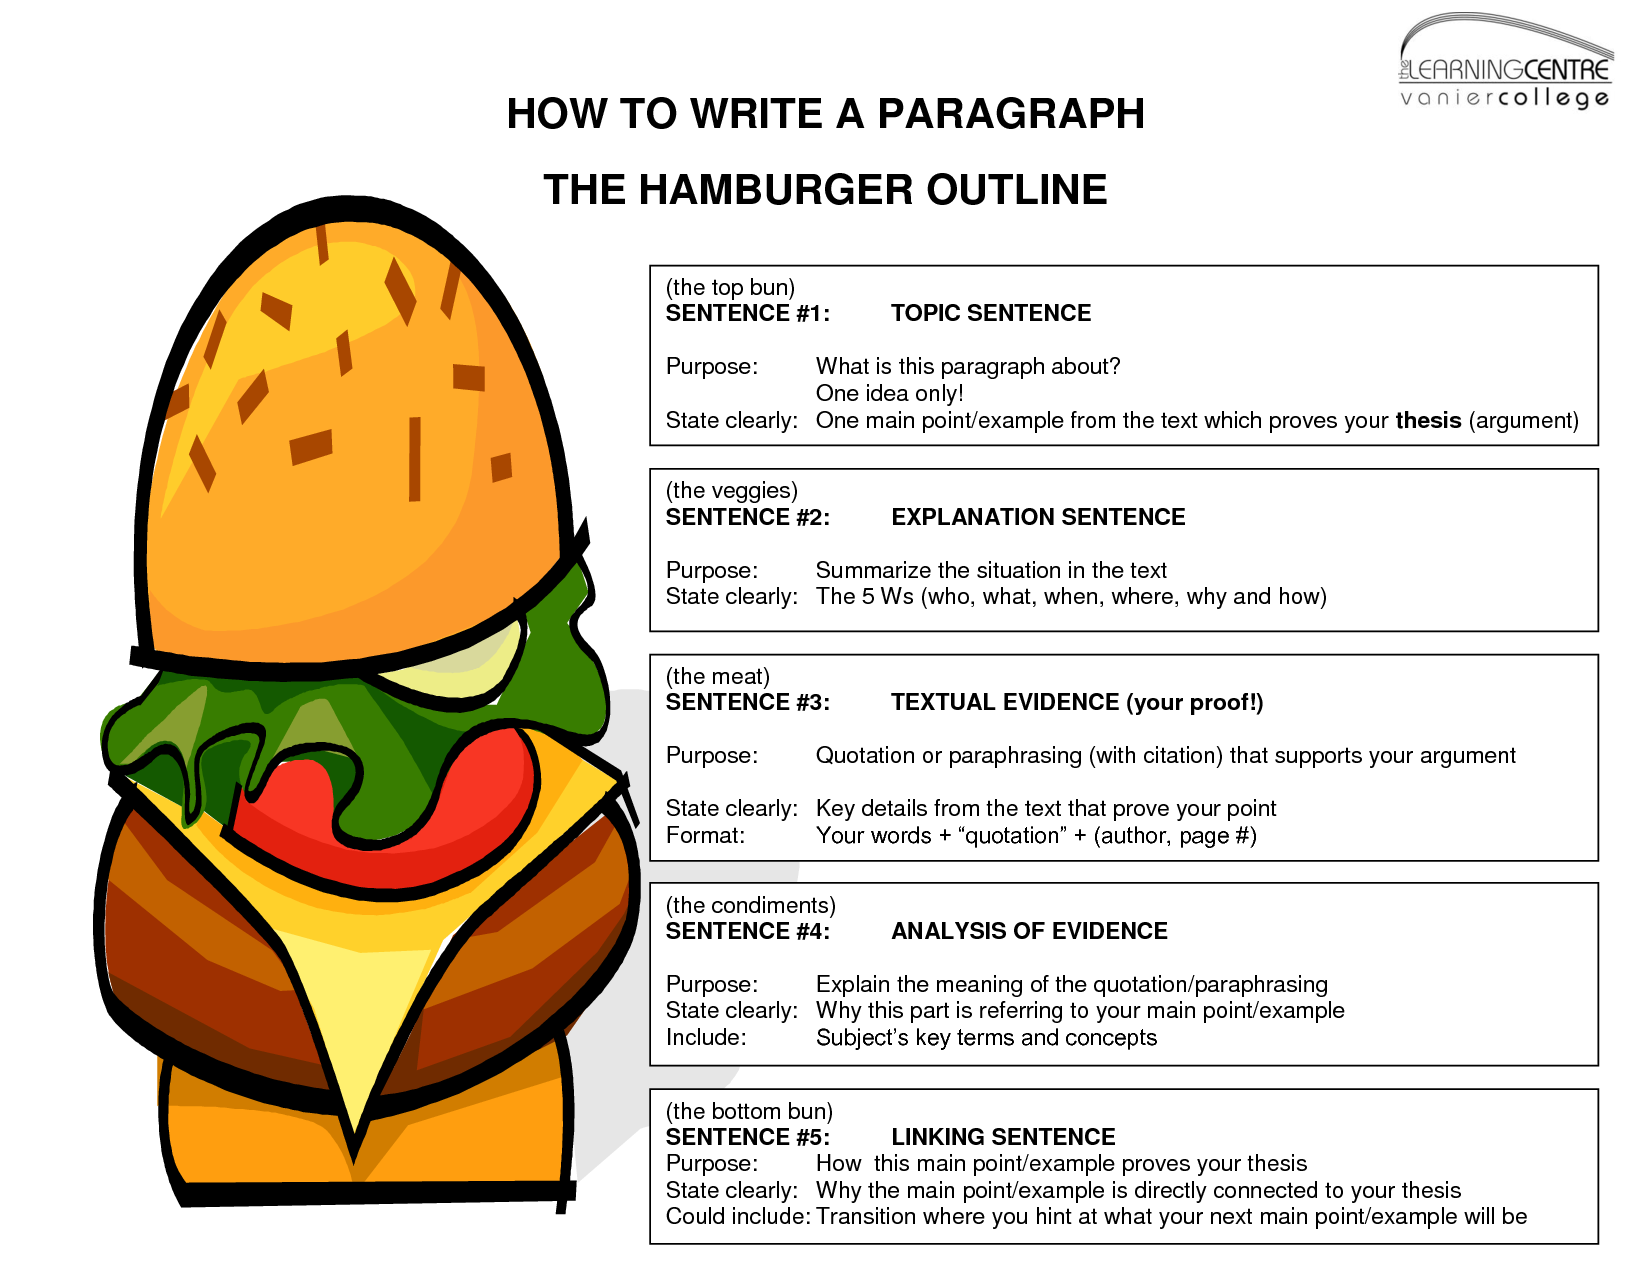 hamburger approach essay writing The gre essay section, also known as the gre analytical writing assessment (awa), actually comprises two parts: the issue essay and the argument essay you are allotted 30 minutes for each essay both test your ability to write a cogent thesis statement that you must defend over the course of several paragraphs.